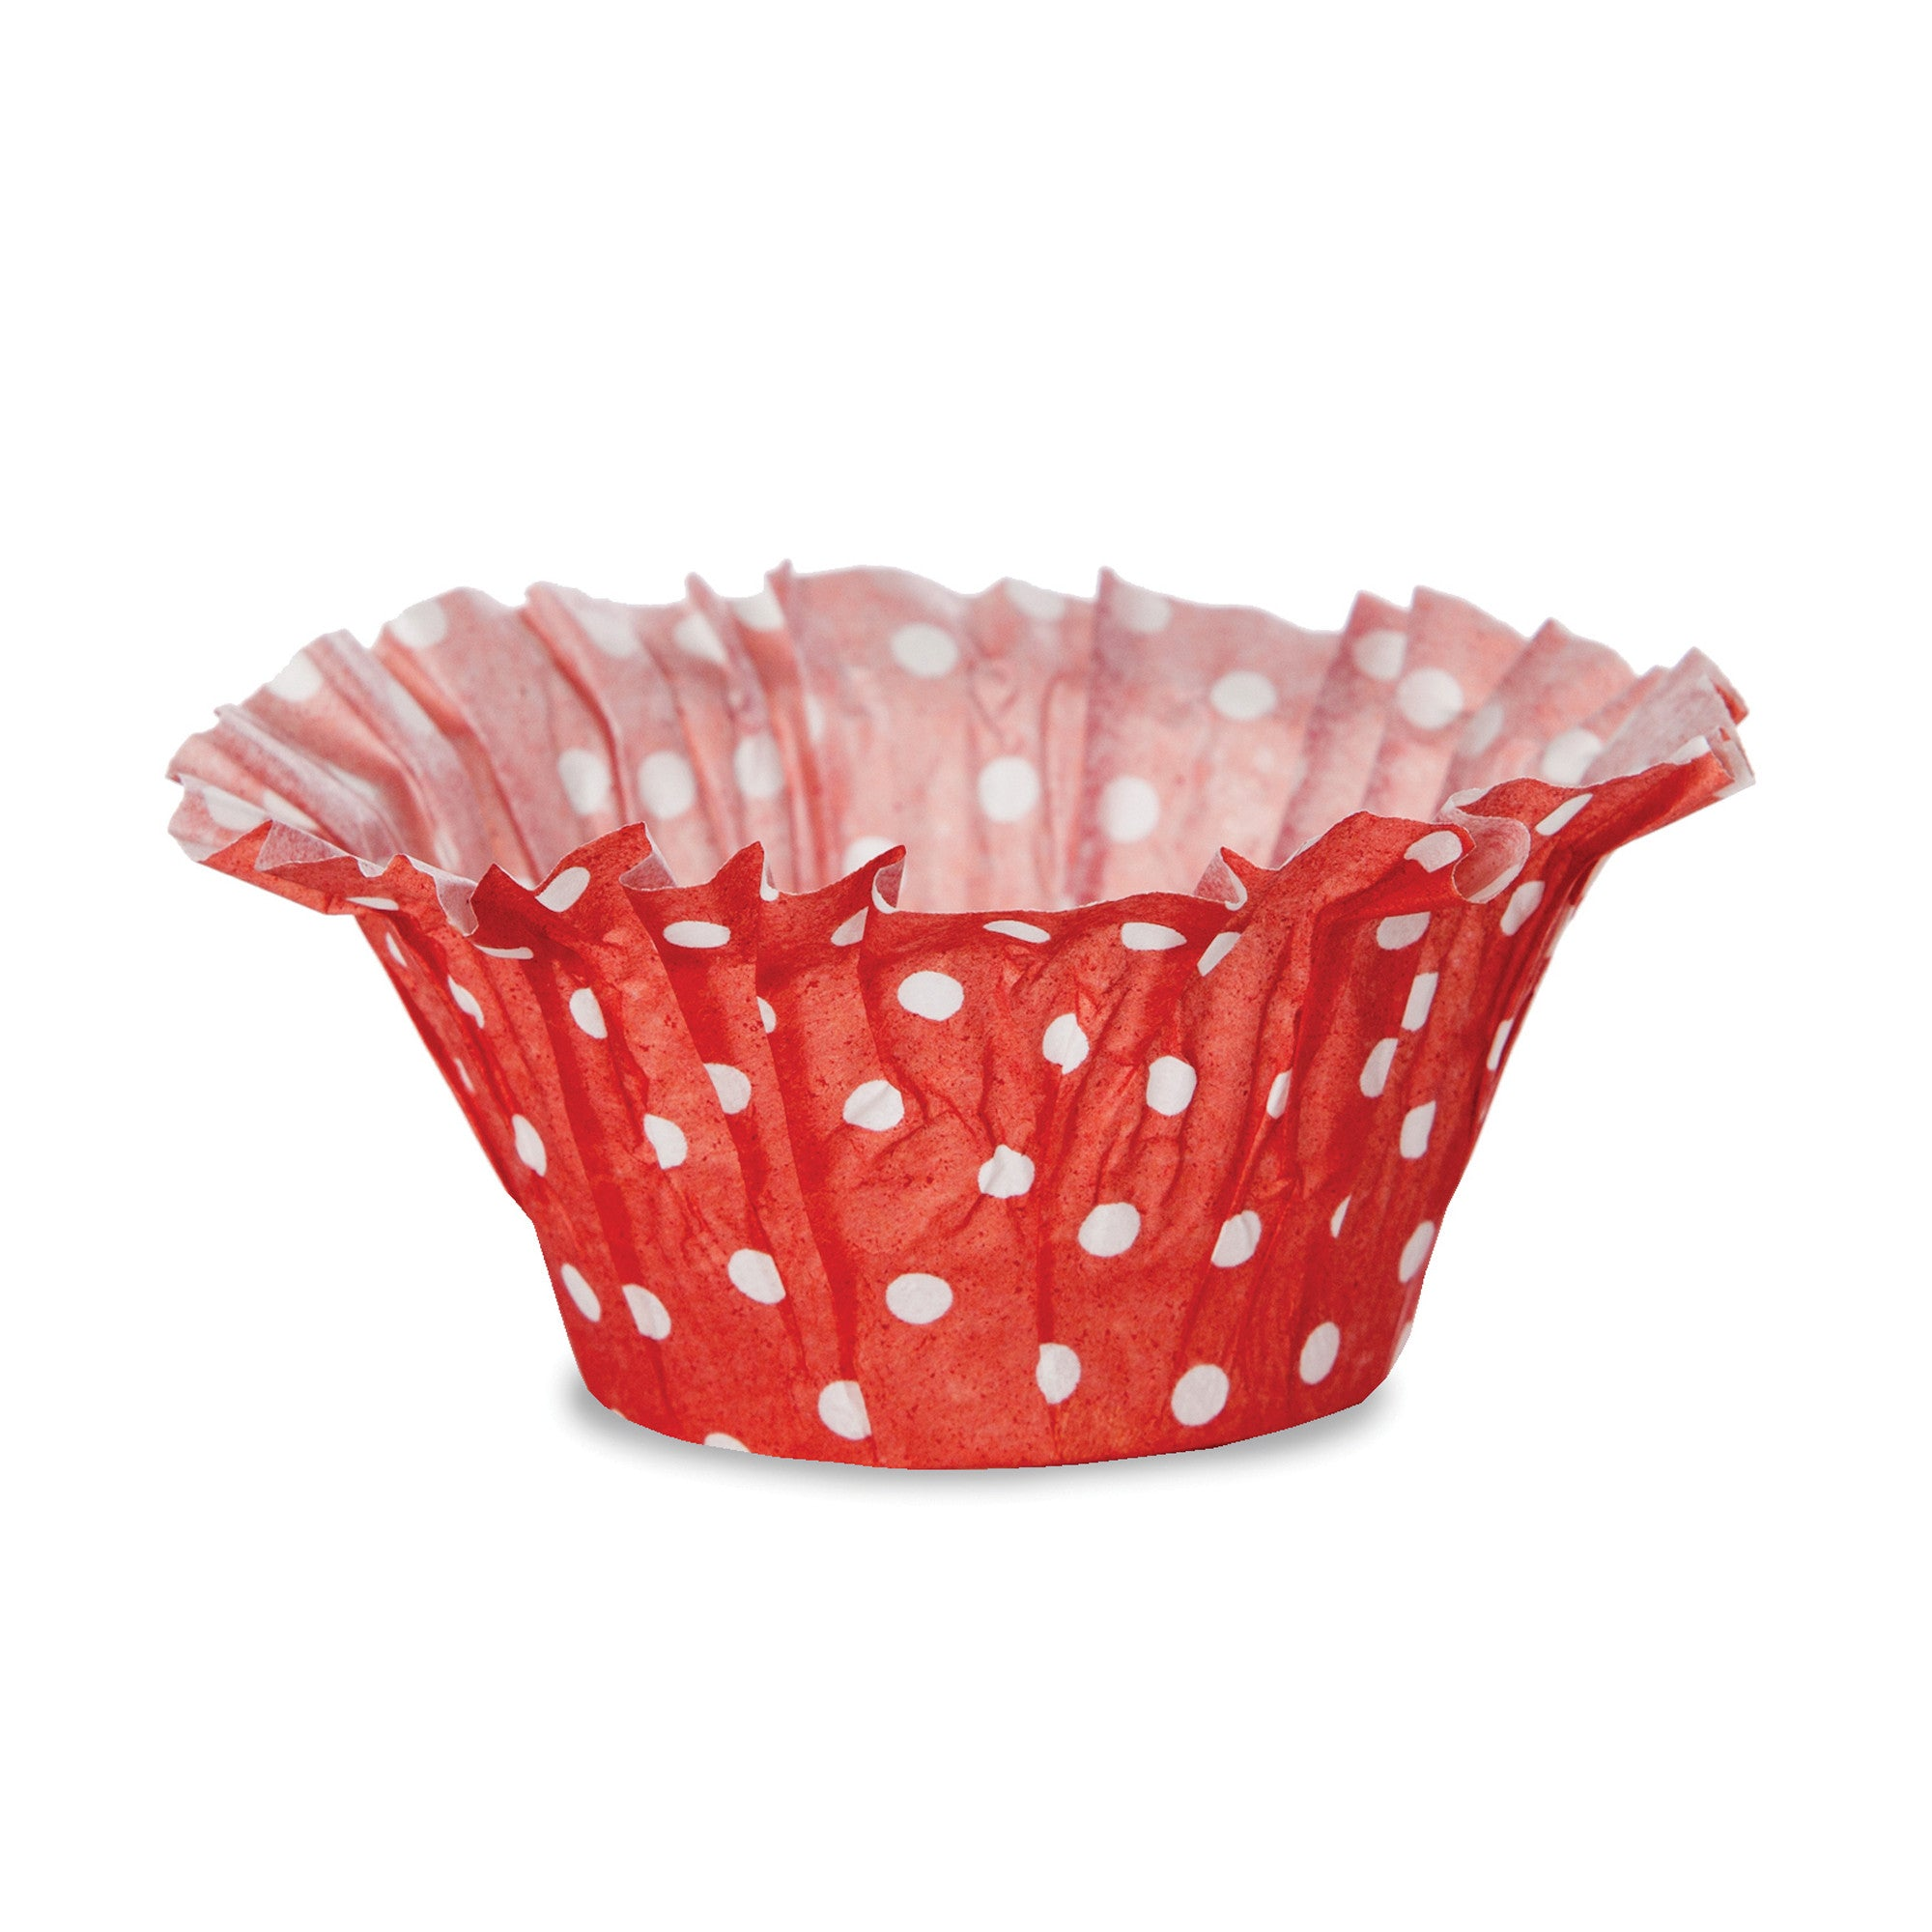 Muffin Baskets, TG0022 - Welcome Home Brands